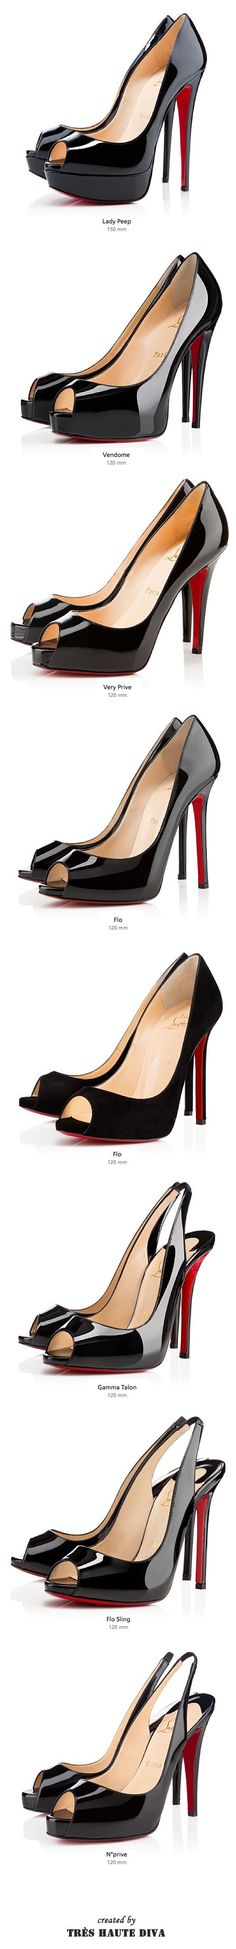 attractive shoes heels designer red high style tom ford 2016-2017